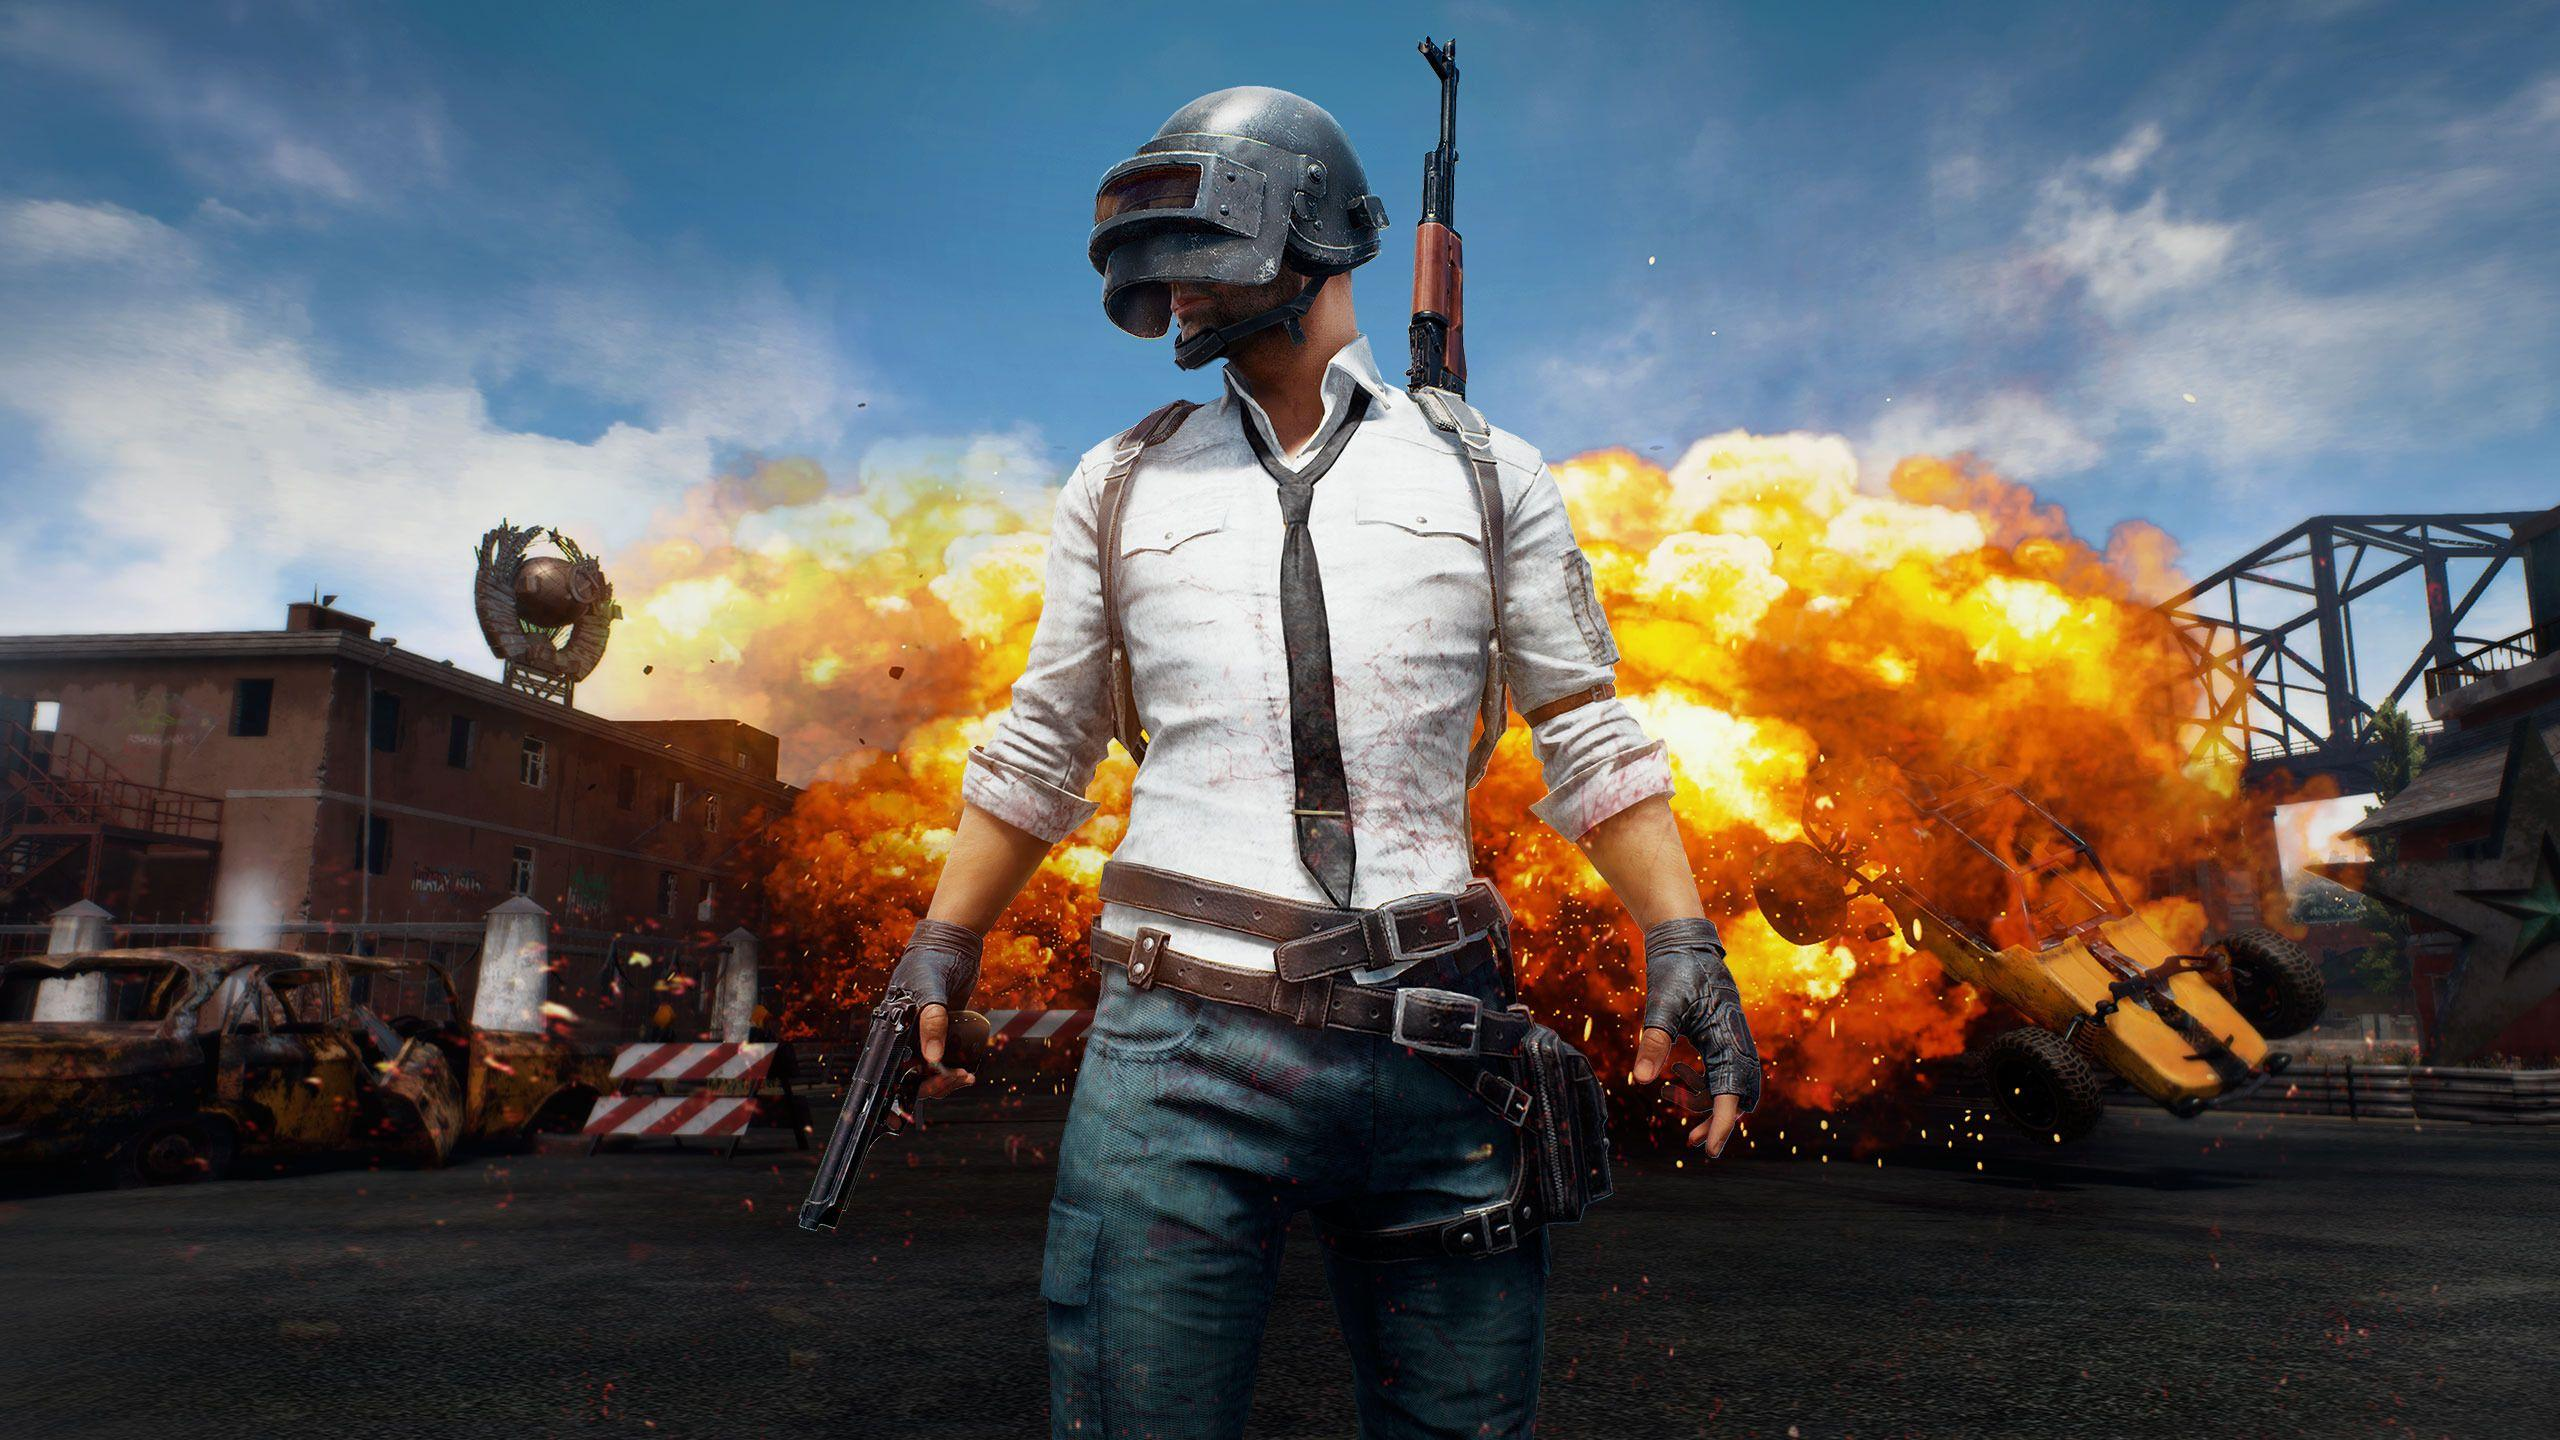 Www Pubg Hd Wallpapers Com: PUBG 4K Wallpapers